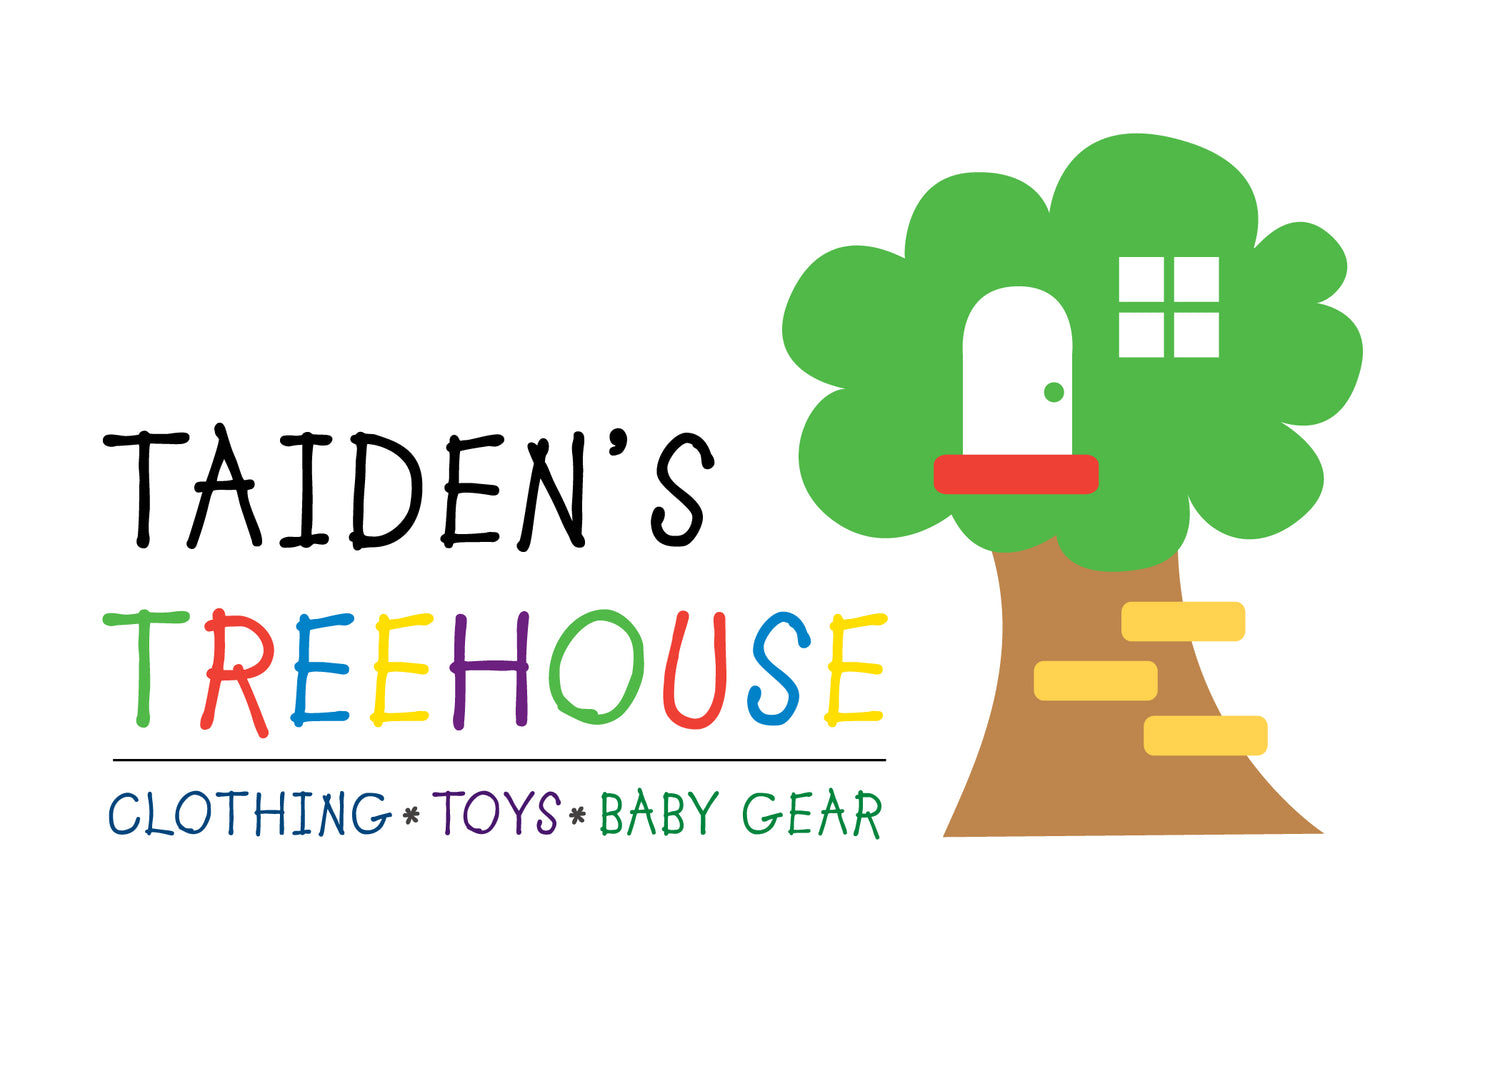 Gently used childrens clothing toys and accesories